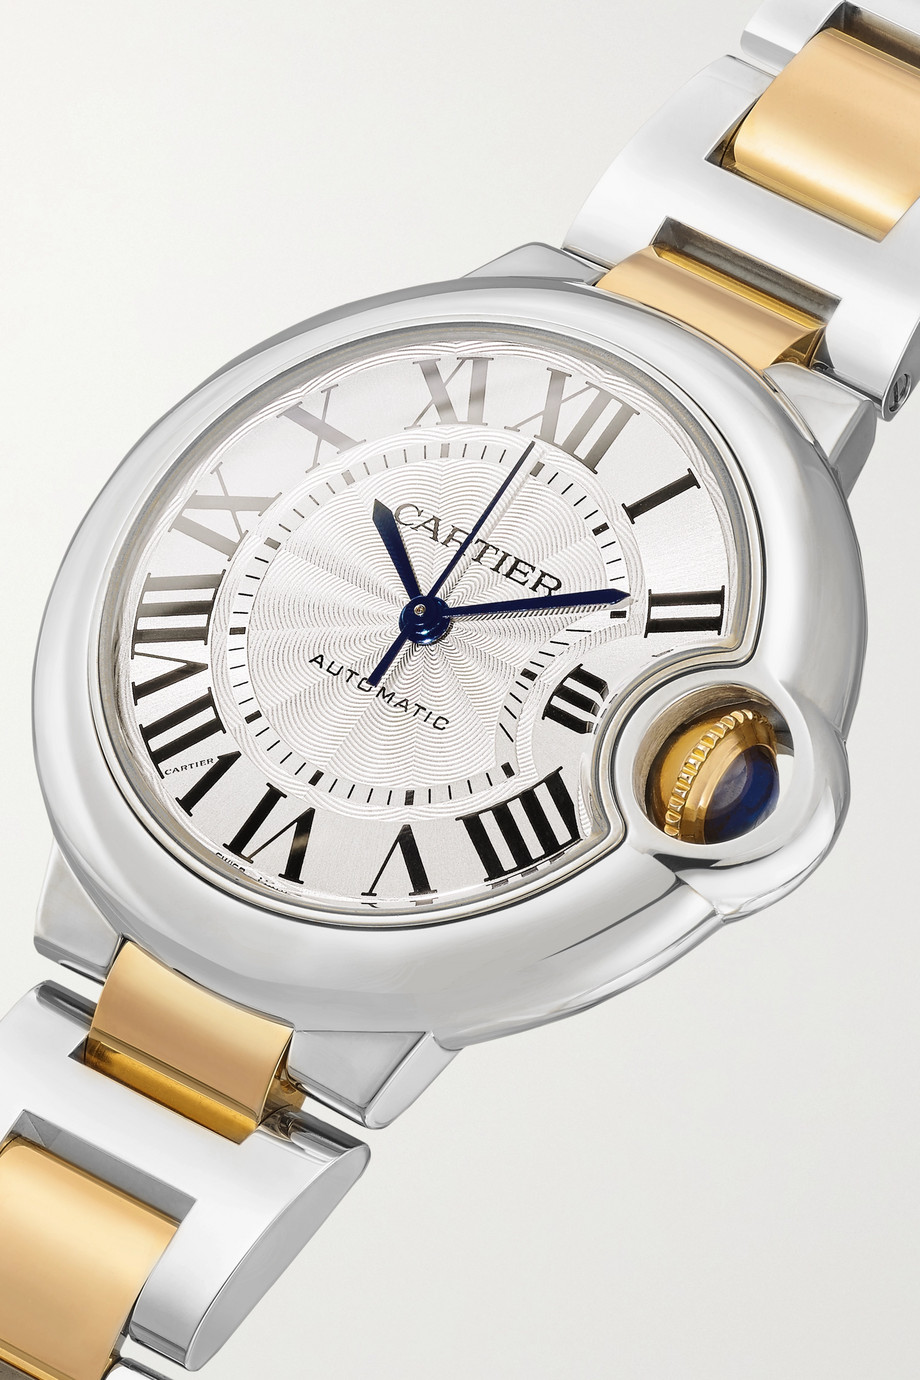 Cartier Ballon Bleu de Cartier Automatic 33mm 18-karat gold and stainless steel watch